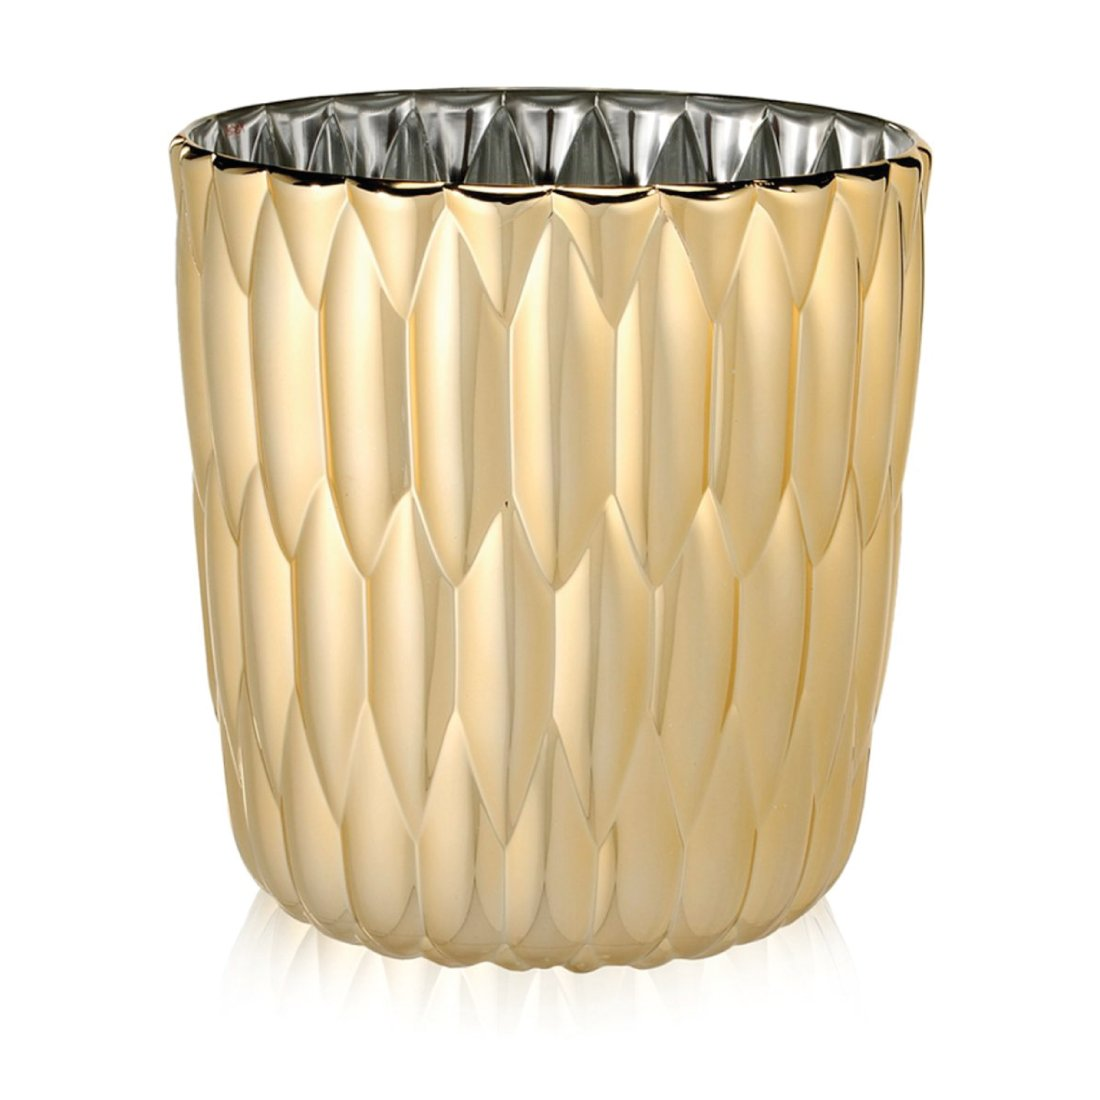 Jelly Metallic Vaas - Kartell